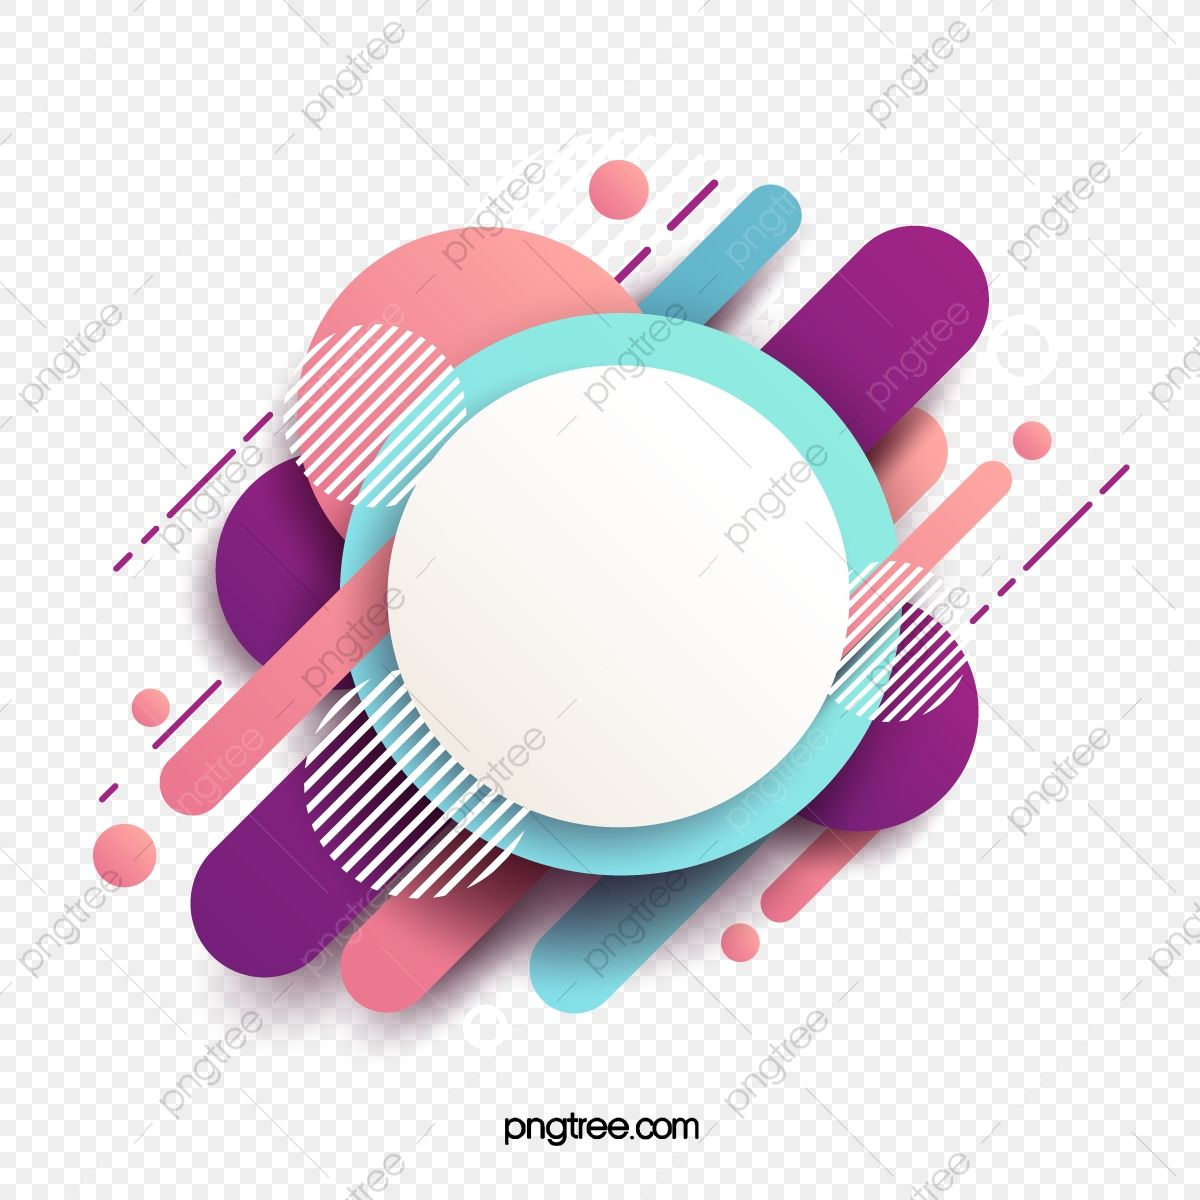 Graphic Design Banner Png Clipart Abstract Abstract Background Abstract Lines Abstract Vector Angle Free Png Download Banner Design Graphic Design Banner